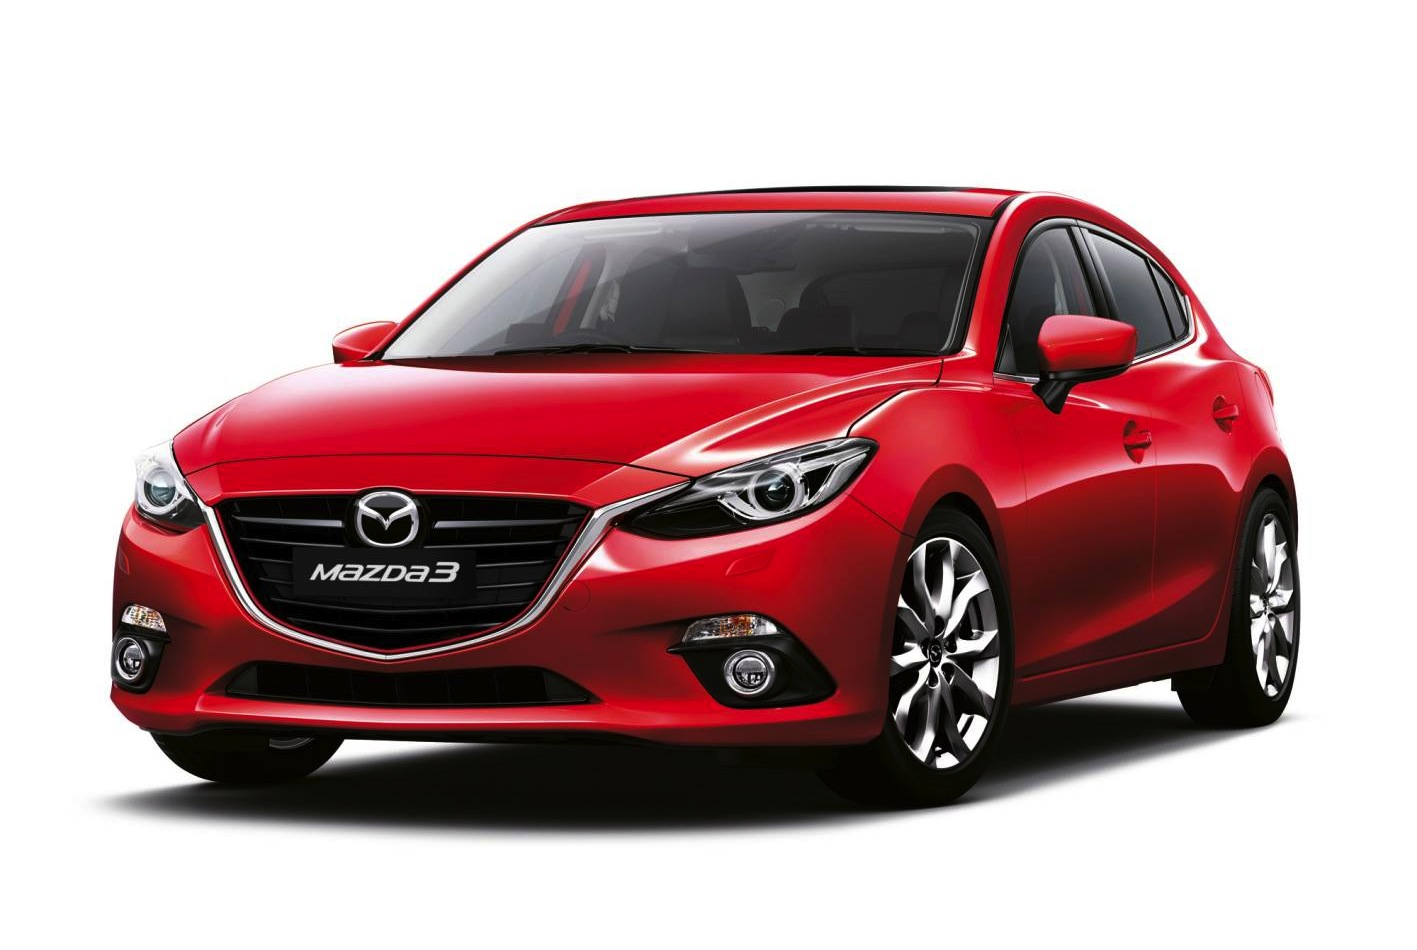 Mazda3 diesel on sale in Australia in September